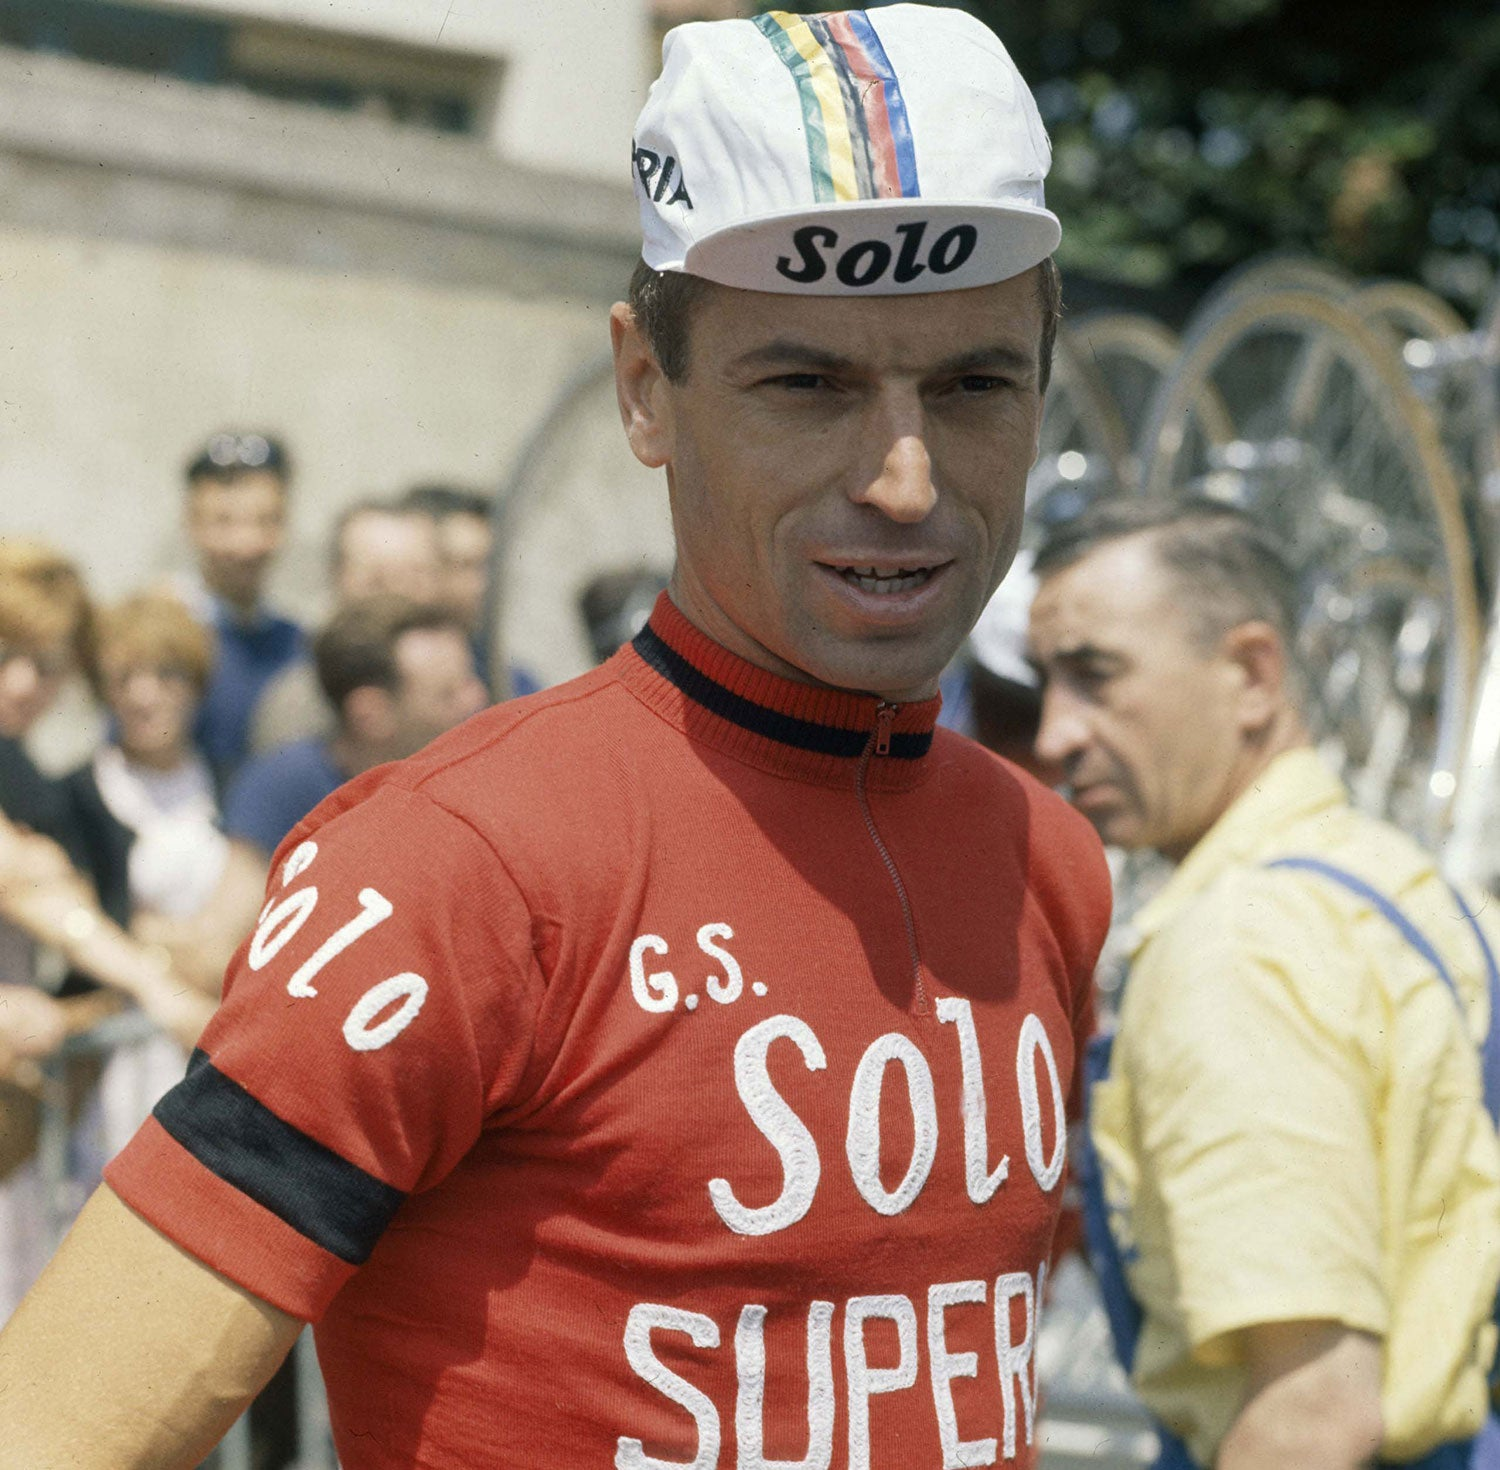 Rik Van Looy donning the iconic Solo-Superia red jersey. Photo credits: Offside / L'Equipe.